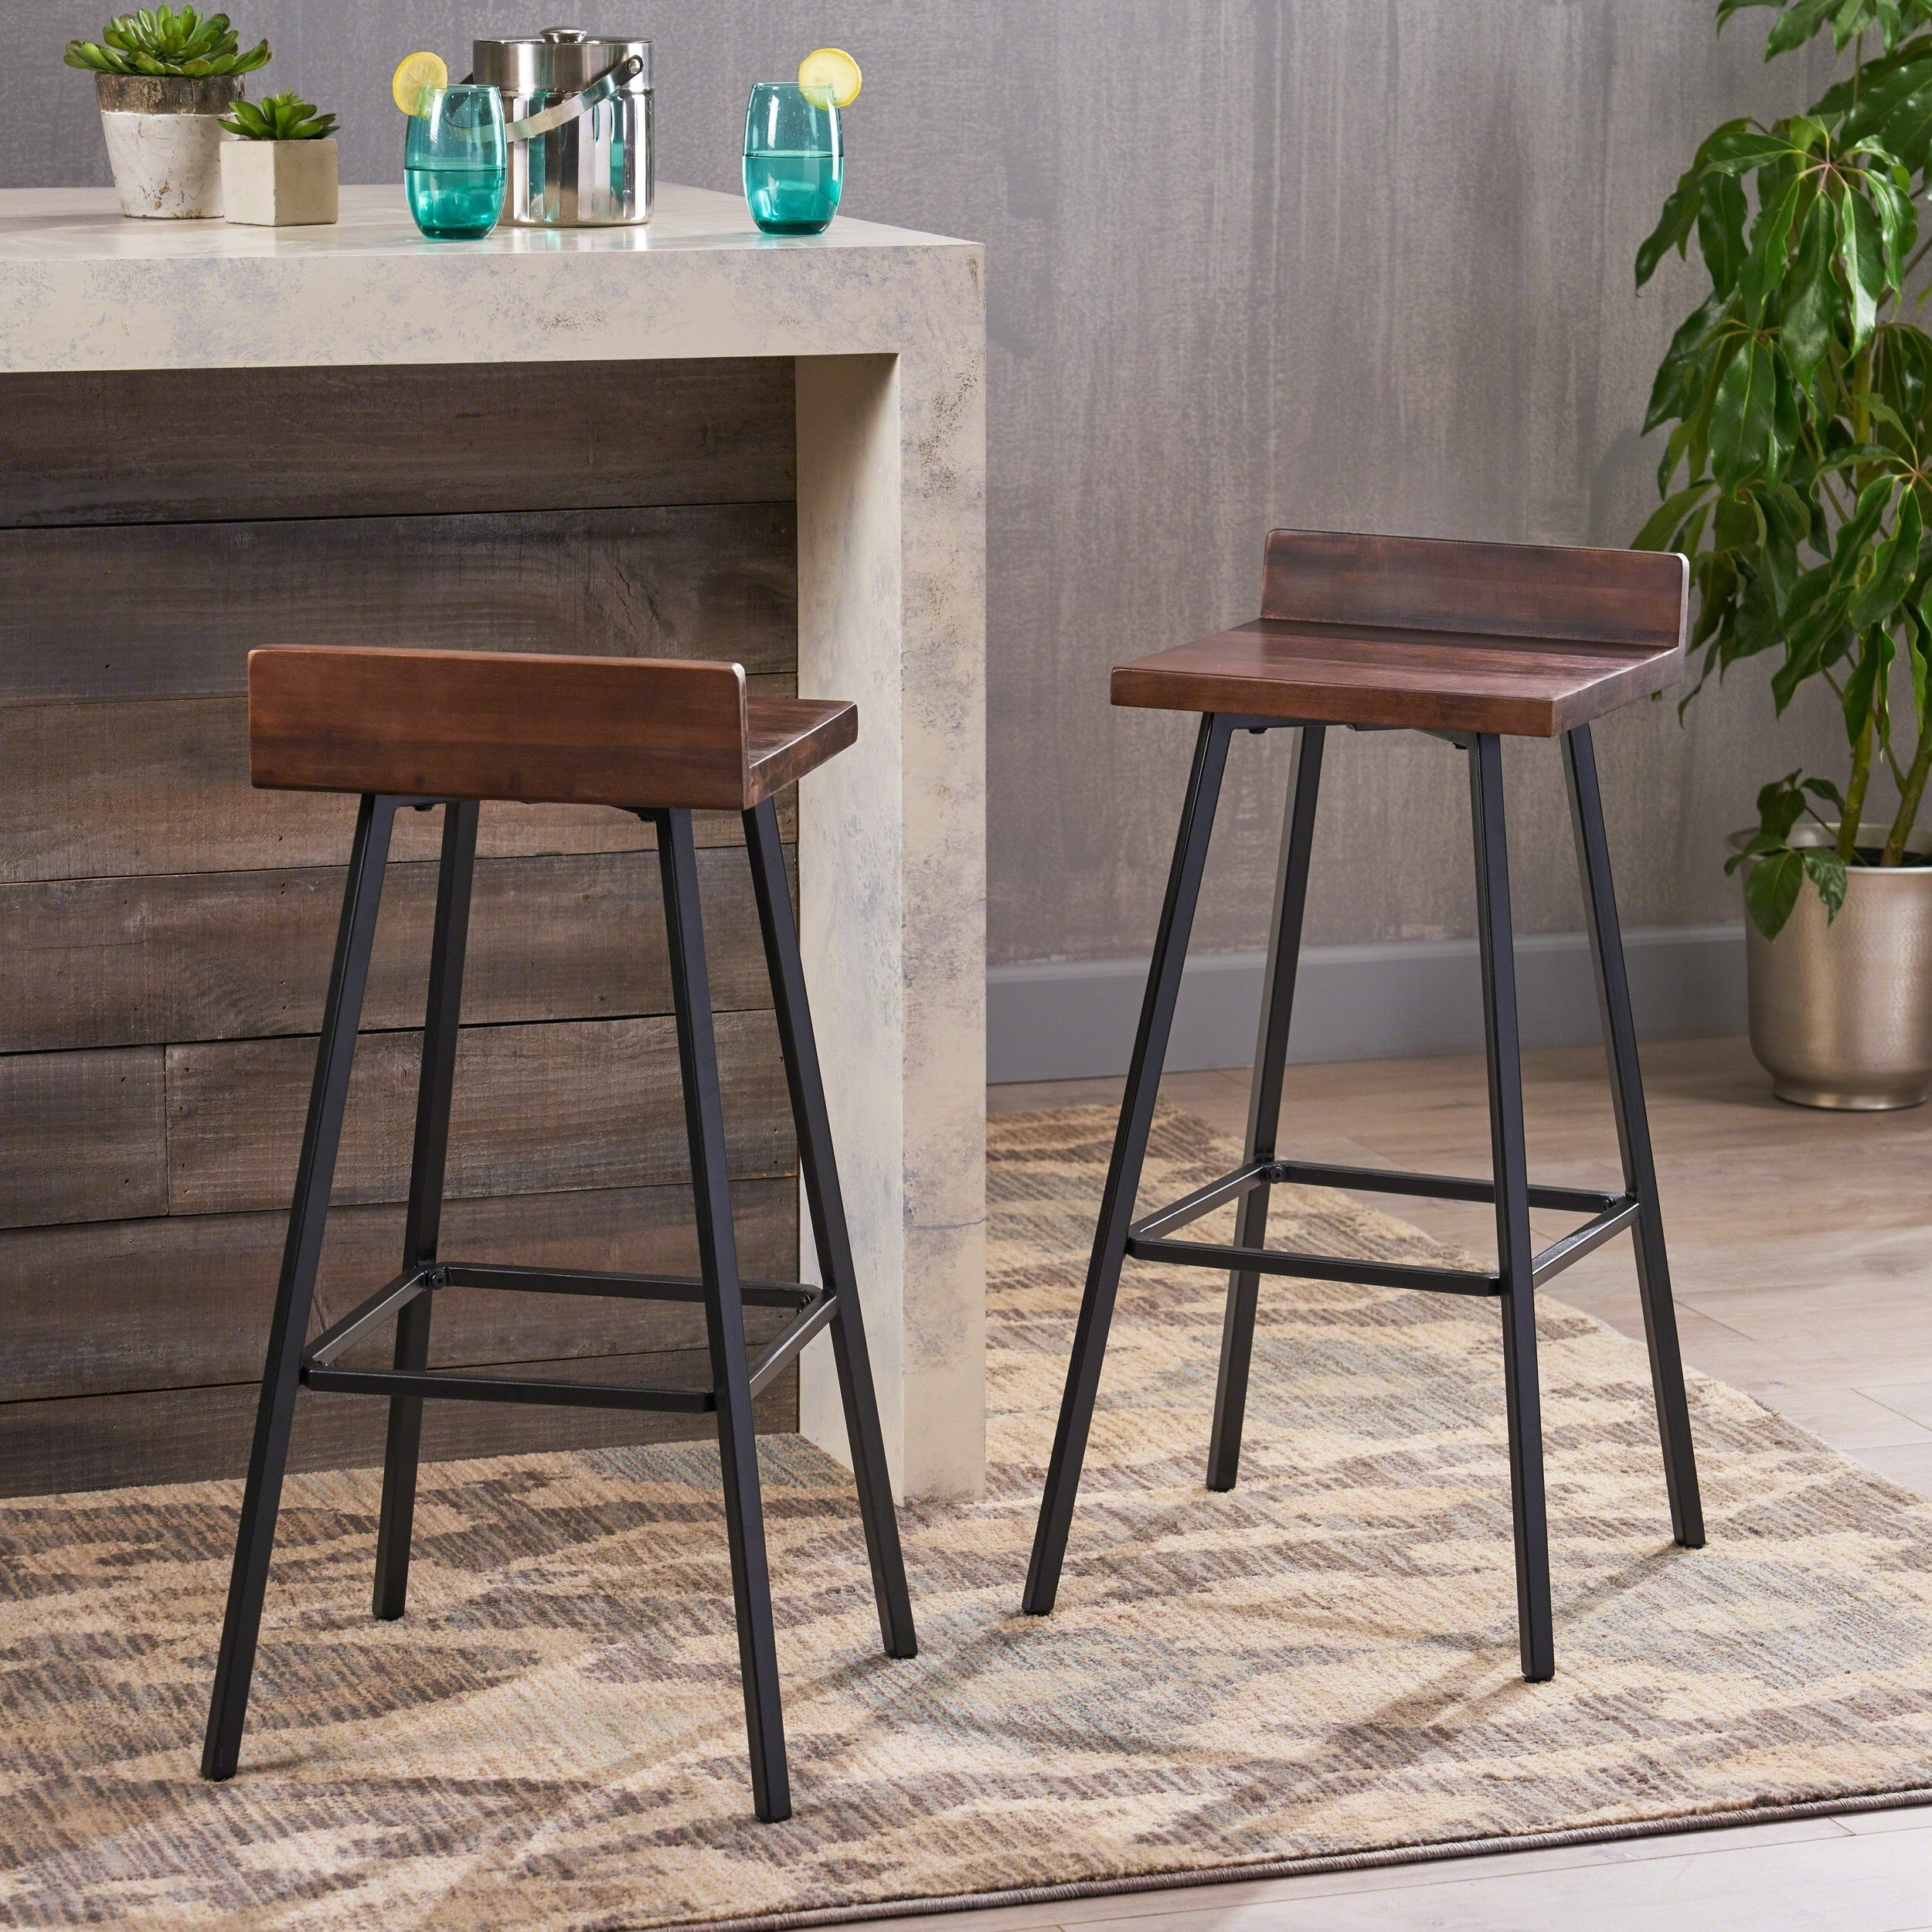 Set of 2 Bidwell Contemporary Indoor Acacia Wood Bar Stools with Iron Legs by